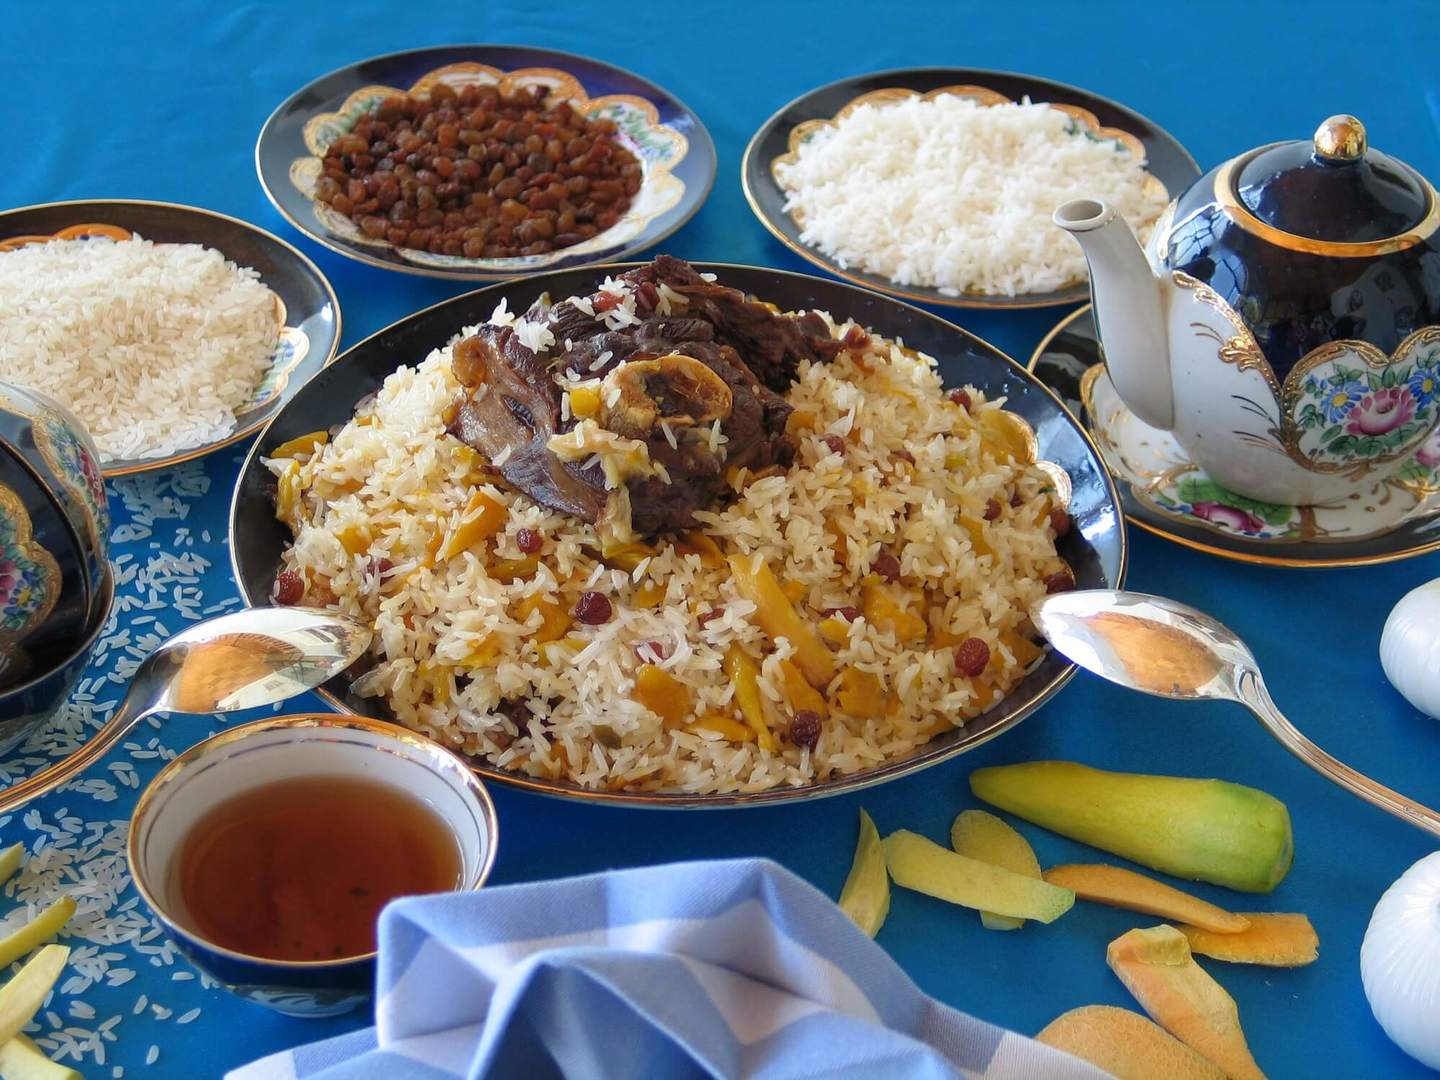 Plov-Central Asian famous rice dish